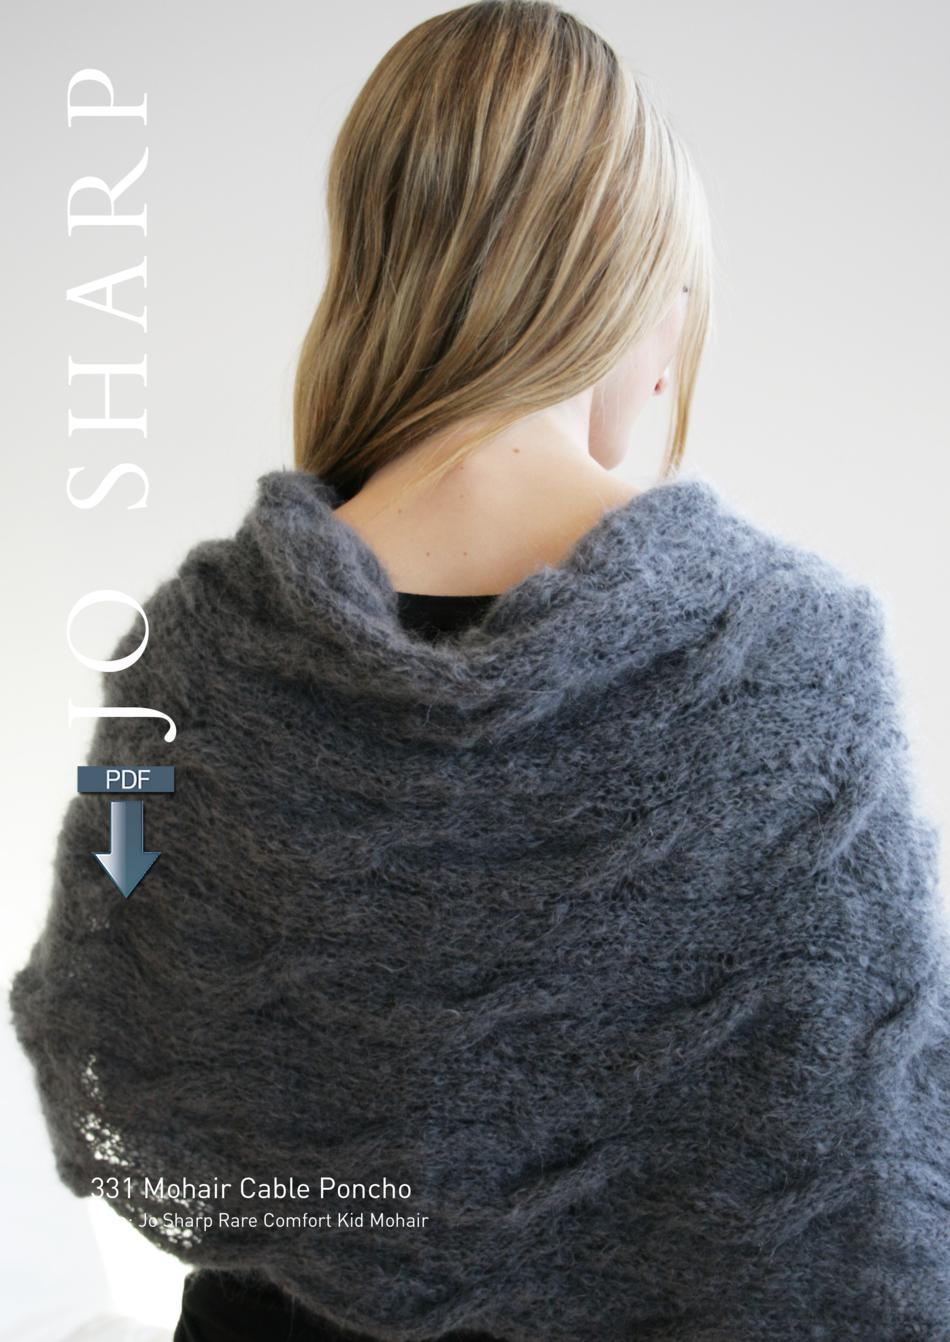 c35ac3674 Jo Sharp Mohair Cable Poncho Pattern - Pattern Download (image A)